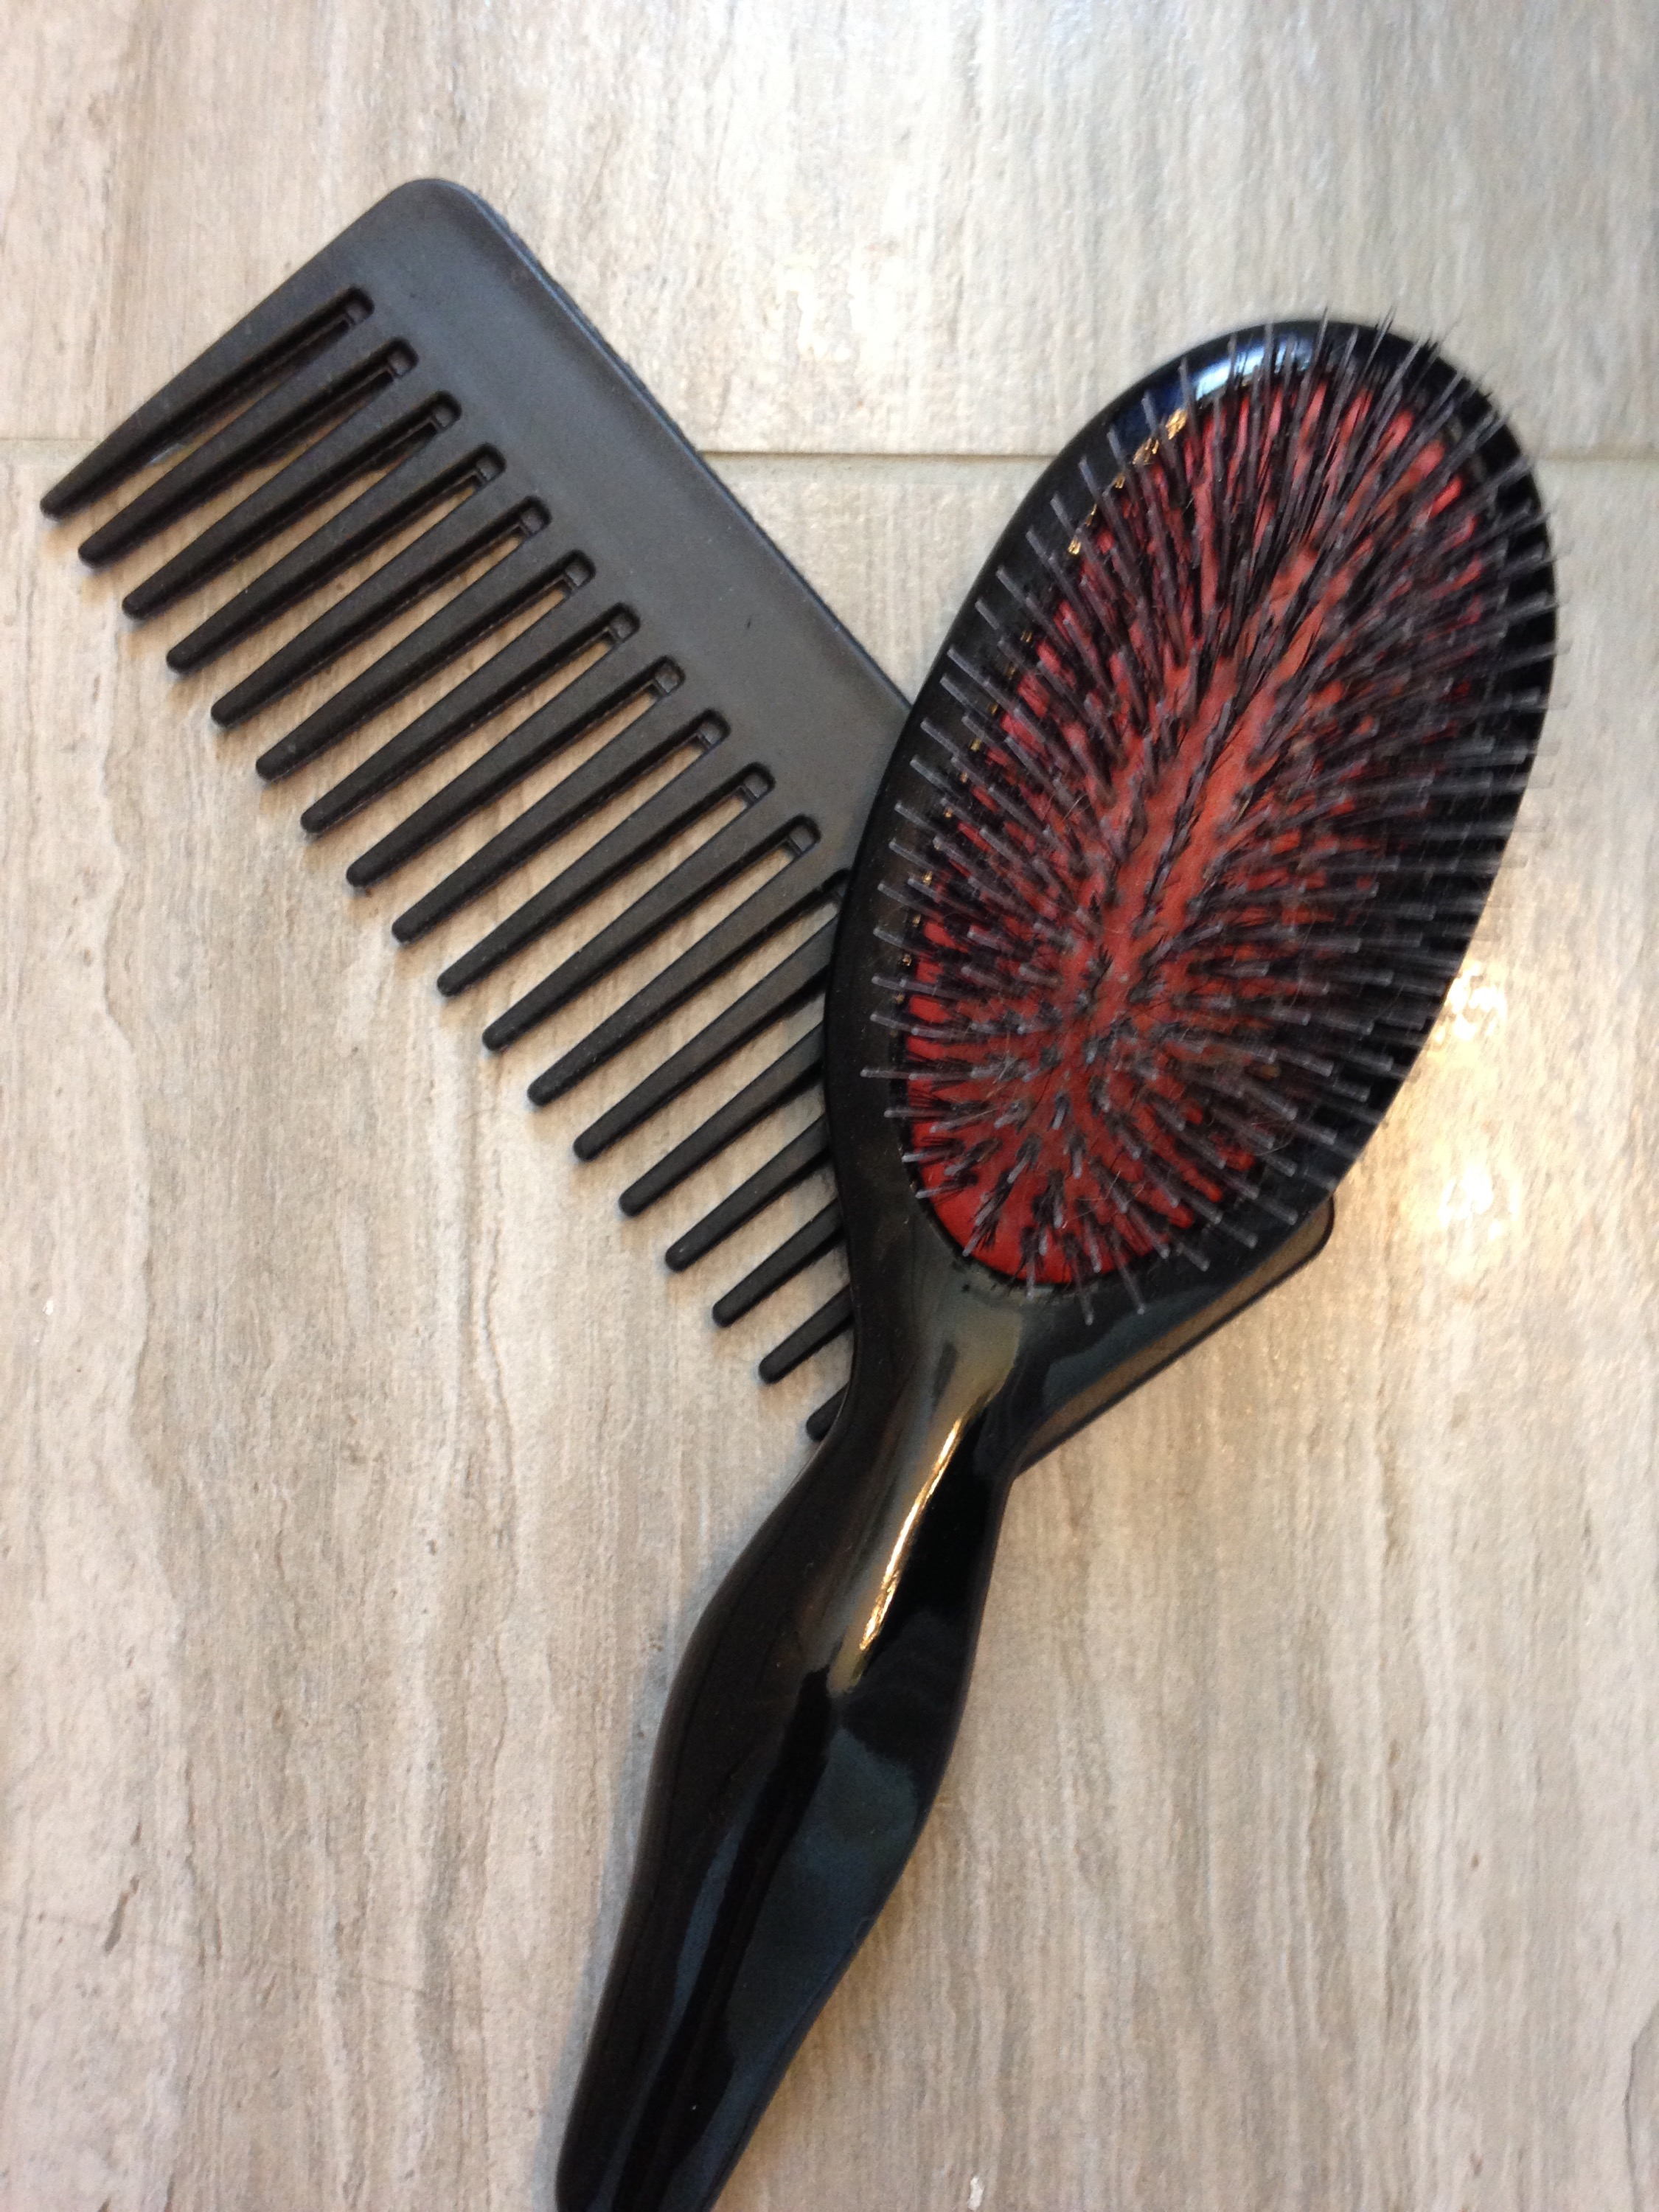 wide-tooth comb, hair brush